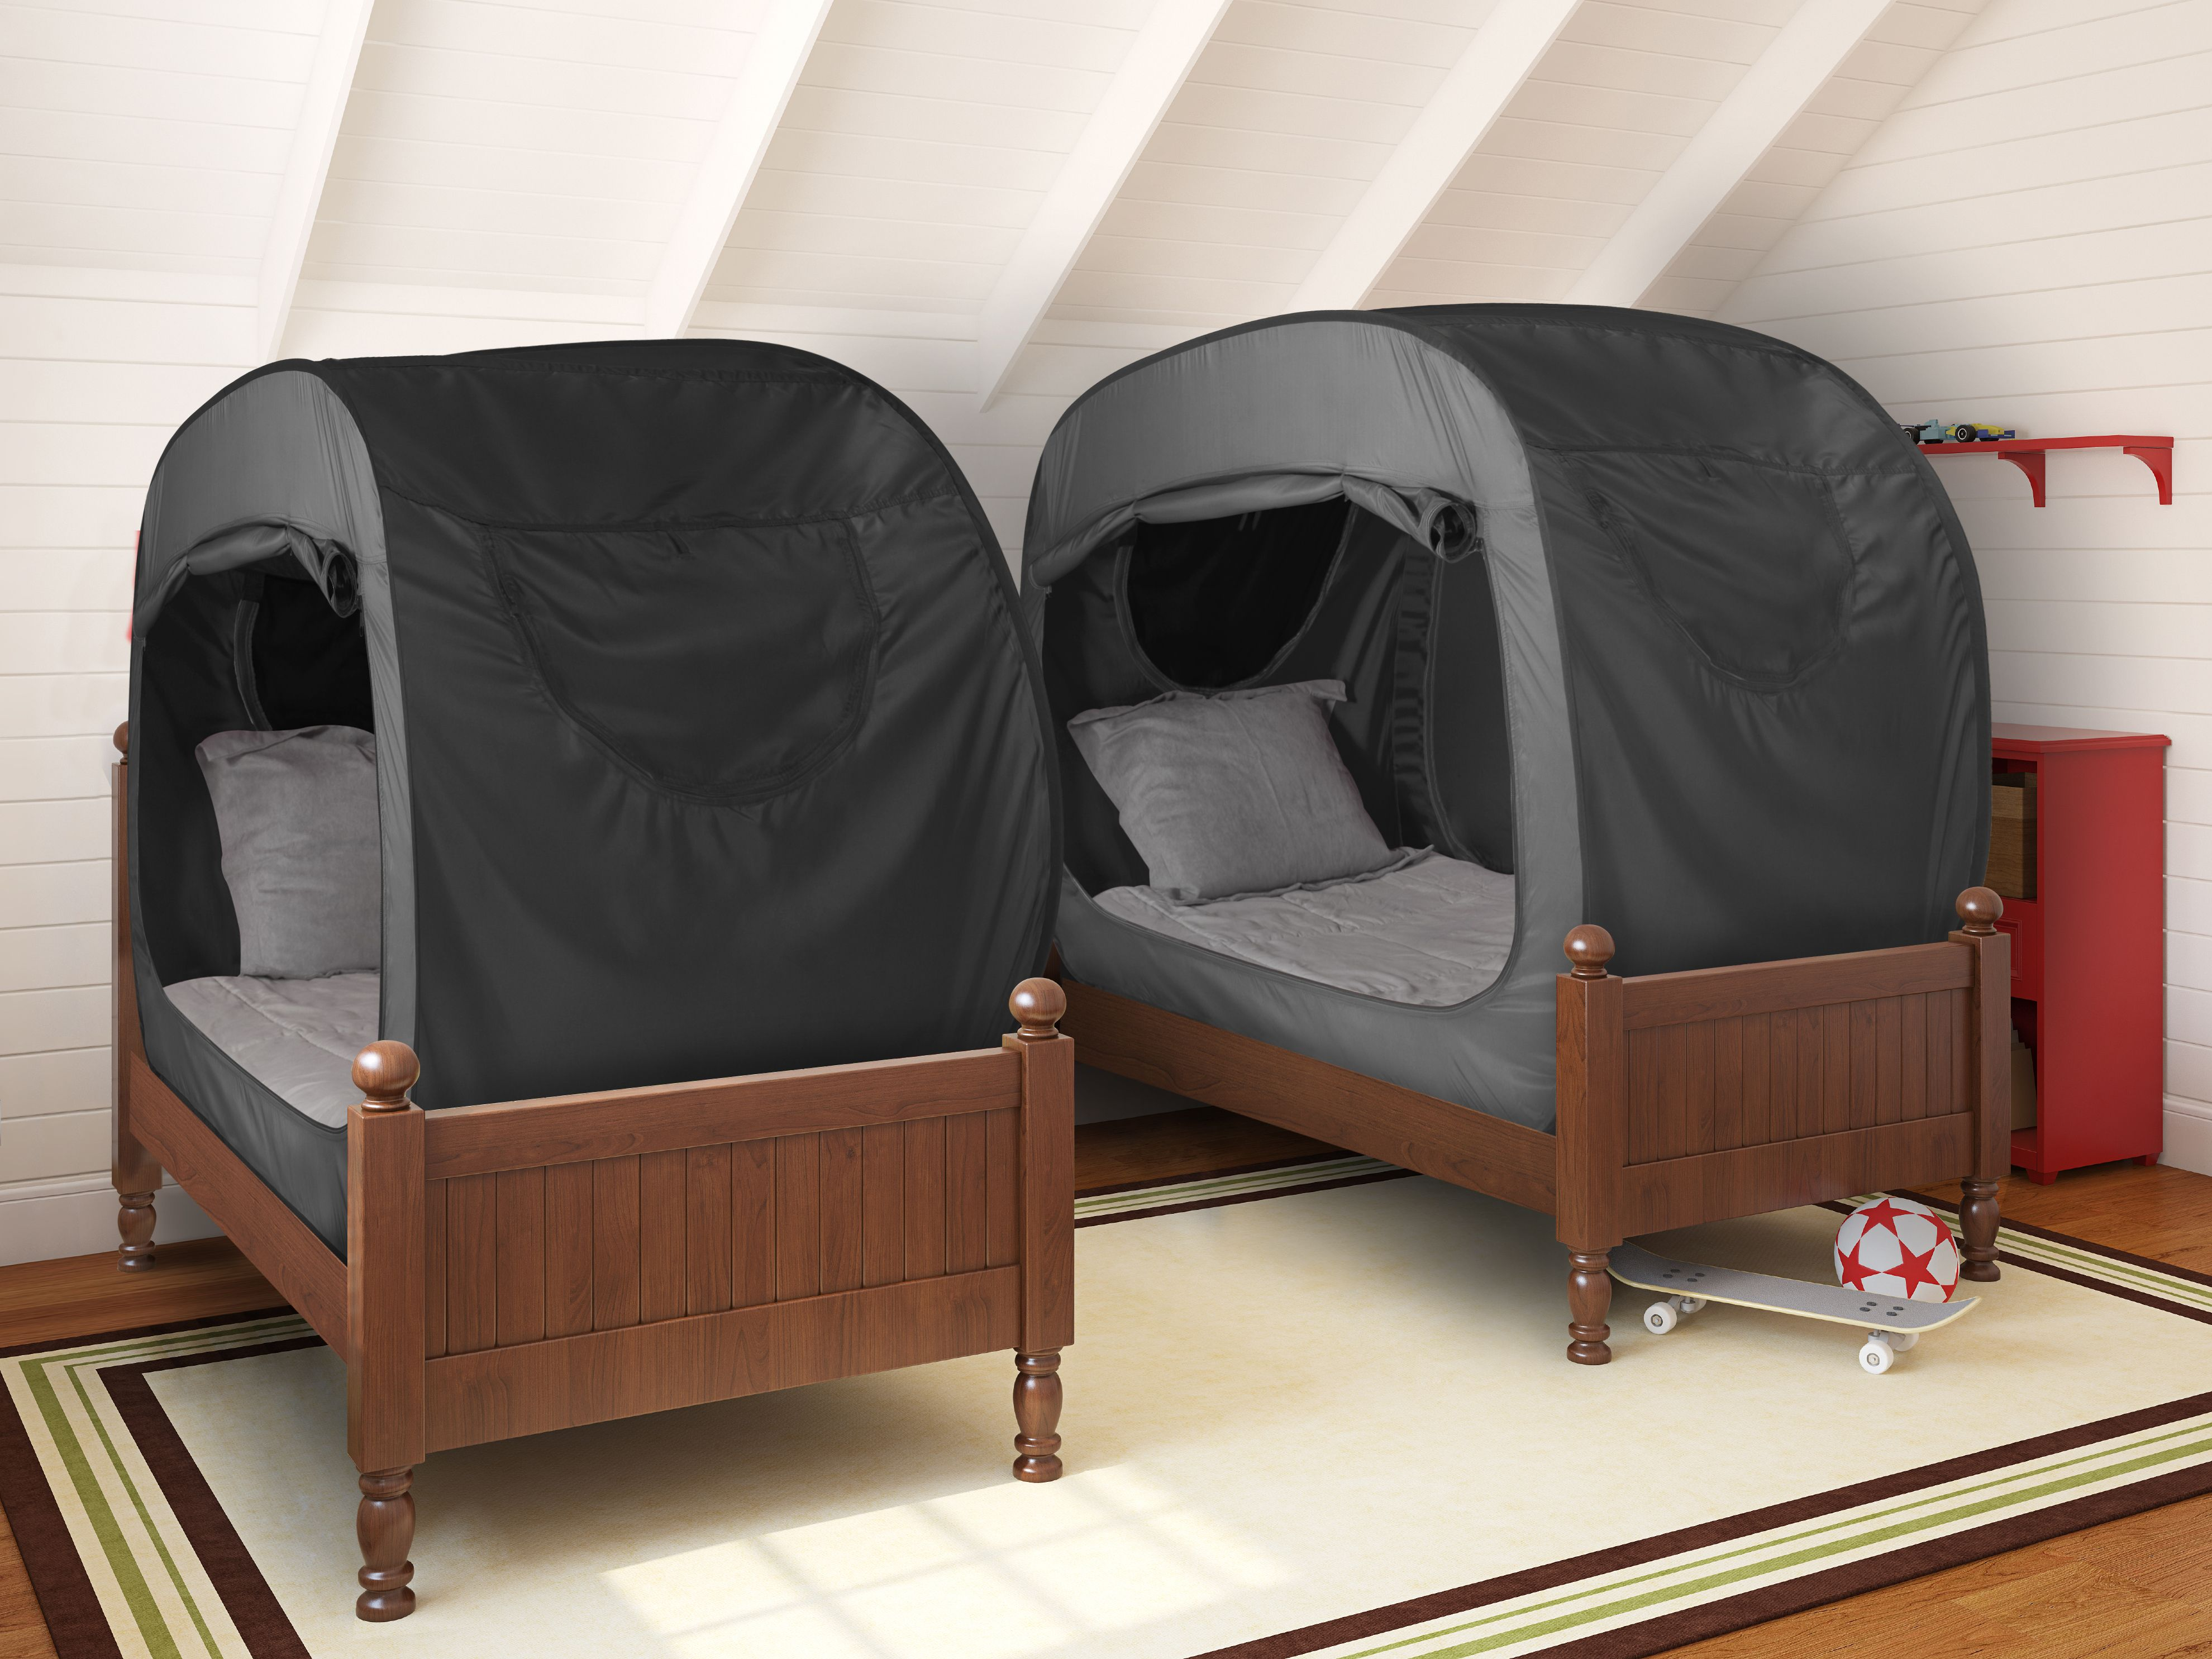 Our Twin Bunk Pop is prefect for smaller spaces! & The Bed Tent | Small spaces Twins and Spaces